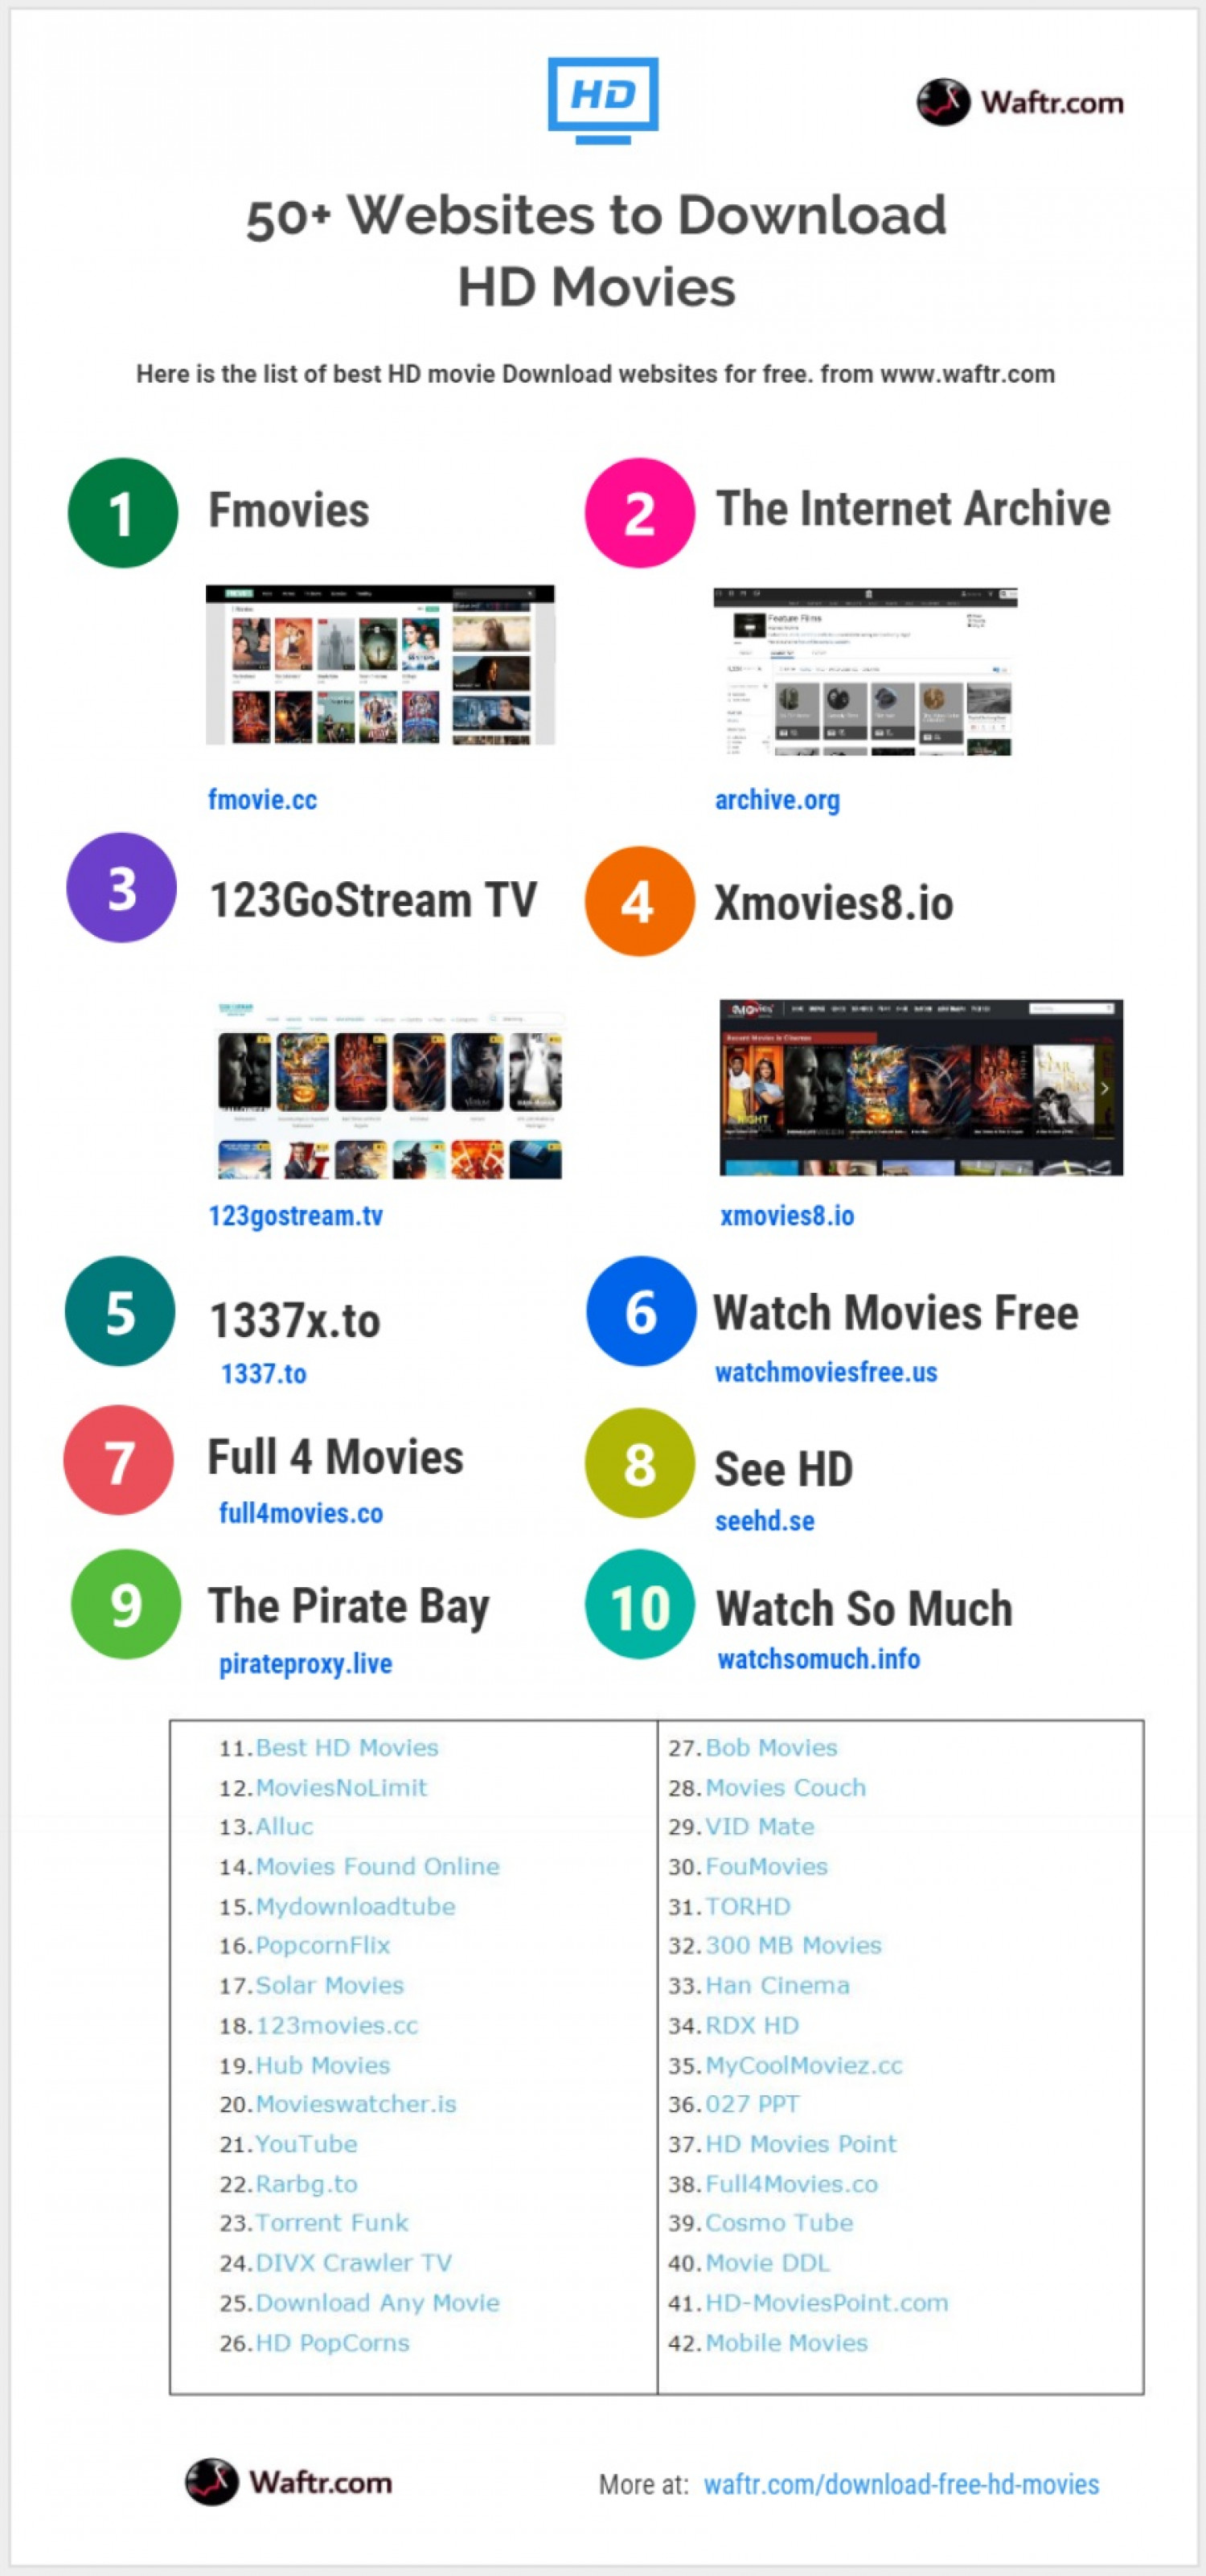 Best list of Websites to Download Free HD Movies Infographic